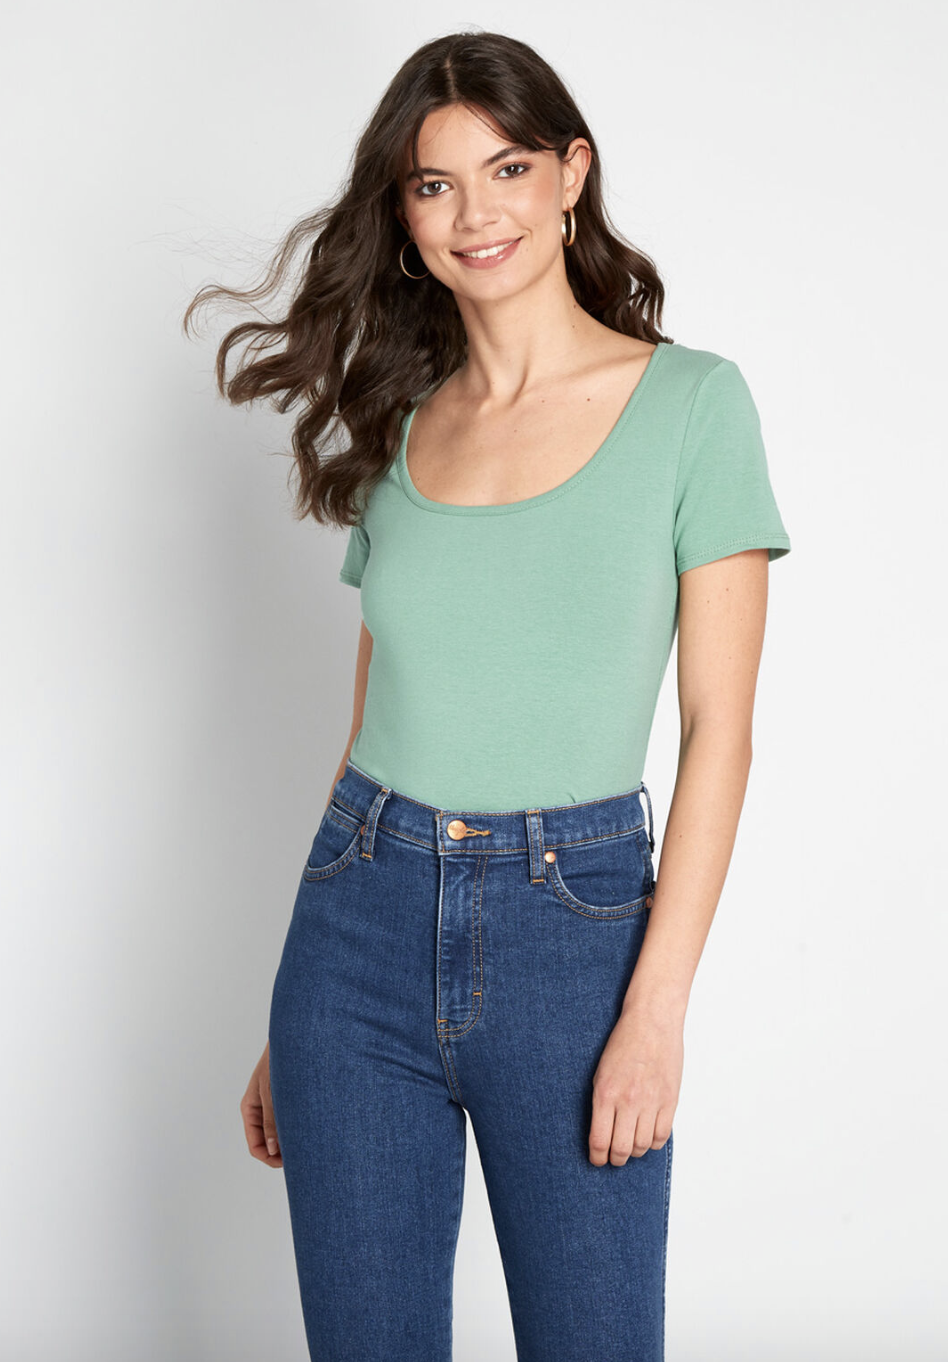 A model in a mint green short-sleeved top